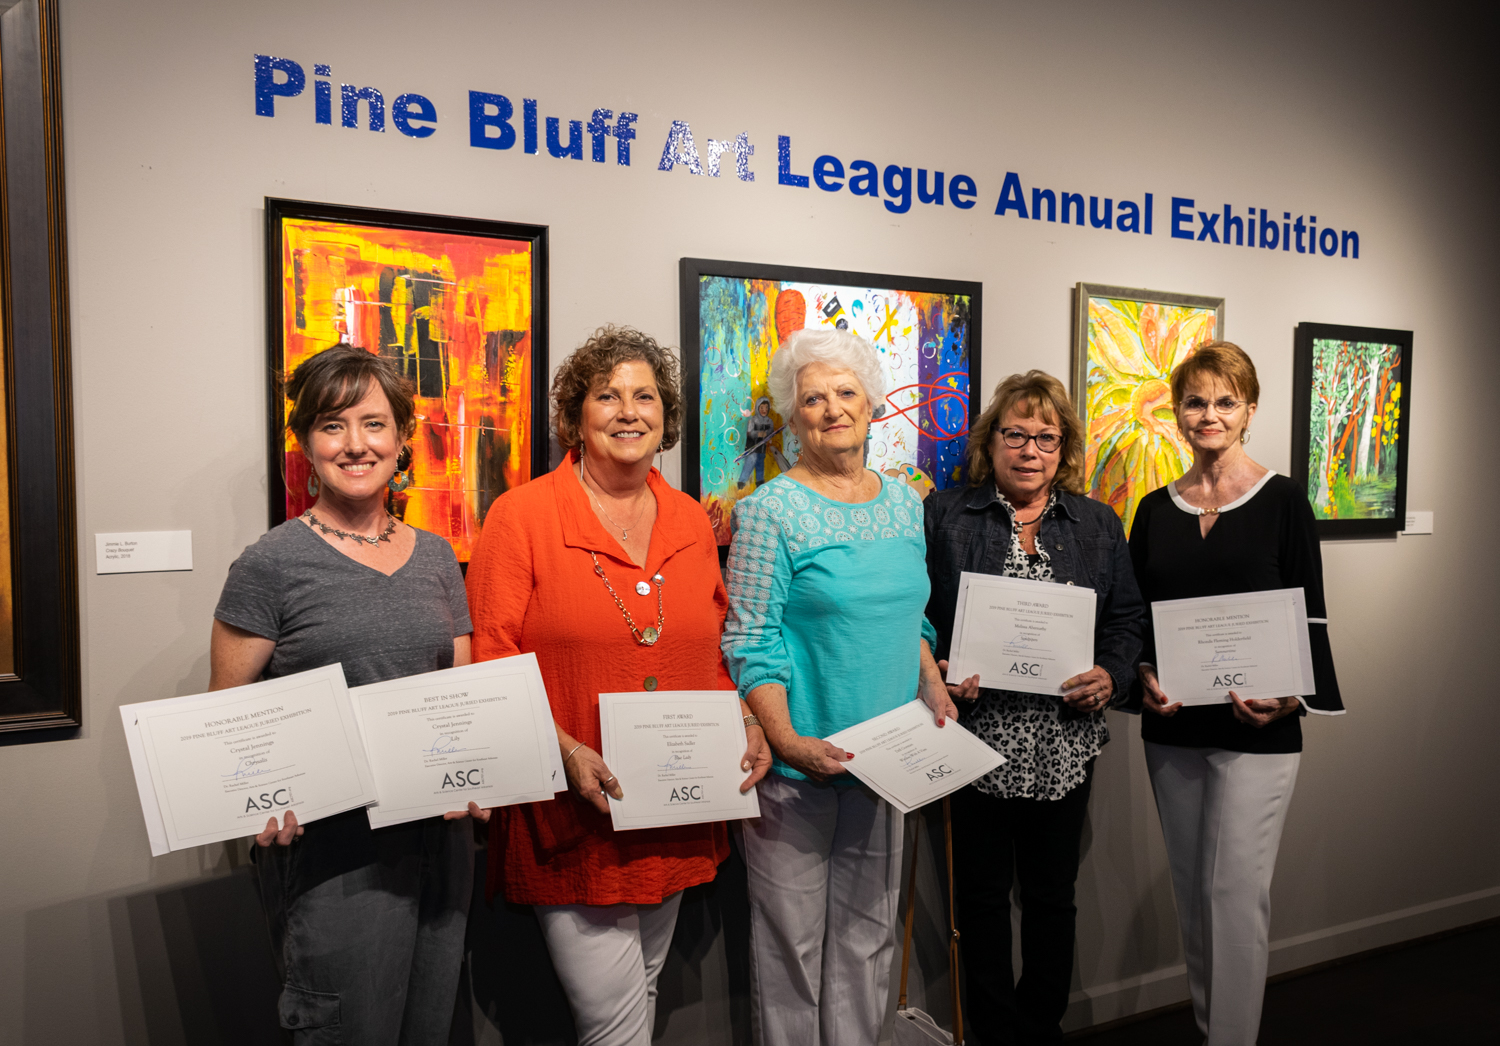 The winners of the 2019 Pine Bluff Art League Annual Exhibition are (from left) Crystal Jennings (Best in Show and Honorable Mention), Elizabeth Sadler (First Place), Dell Gorman (Second Place), Melissa Abernathy (Third Place), and Rhonda Fleming Holderfield (Honorable Mention).